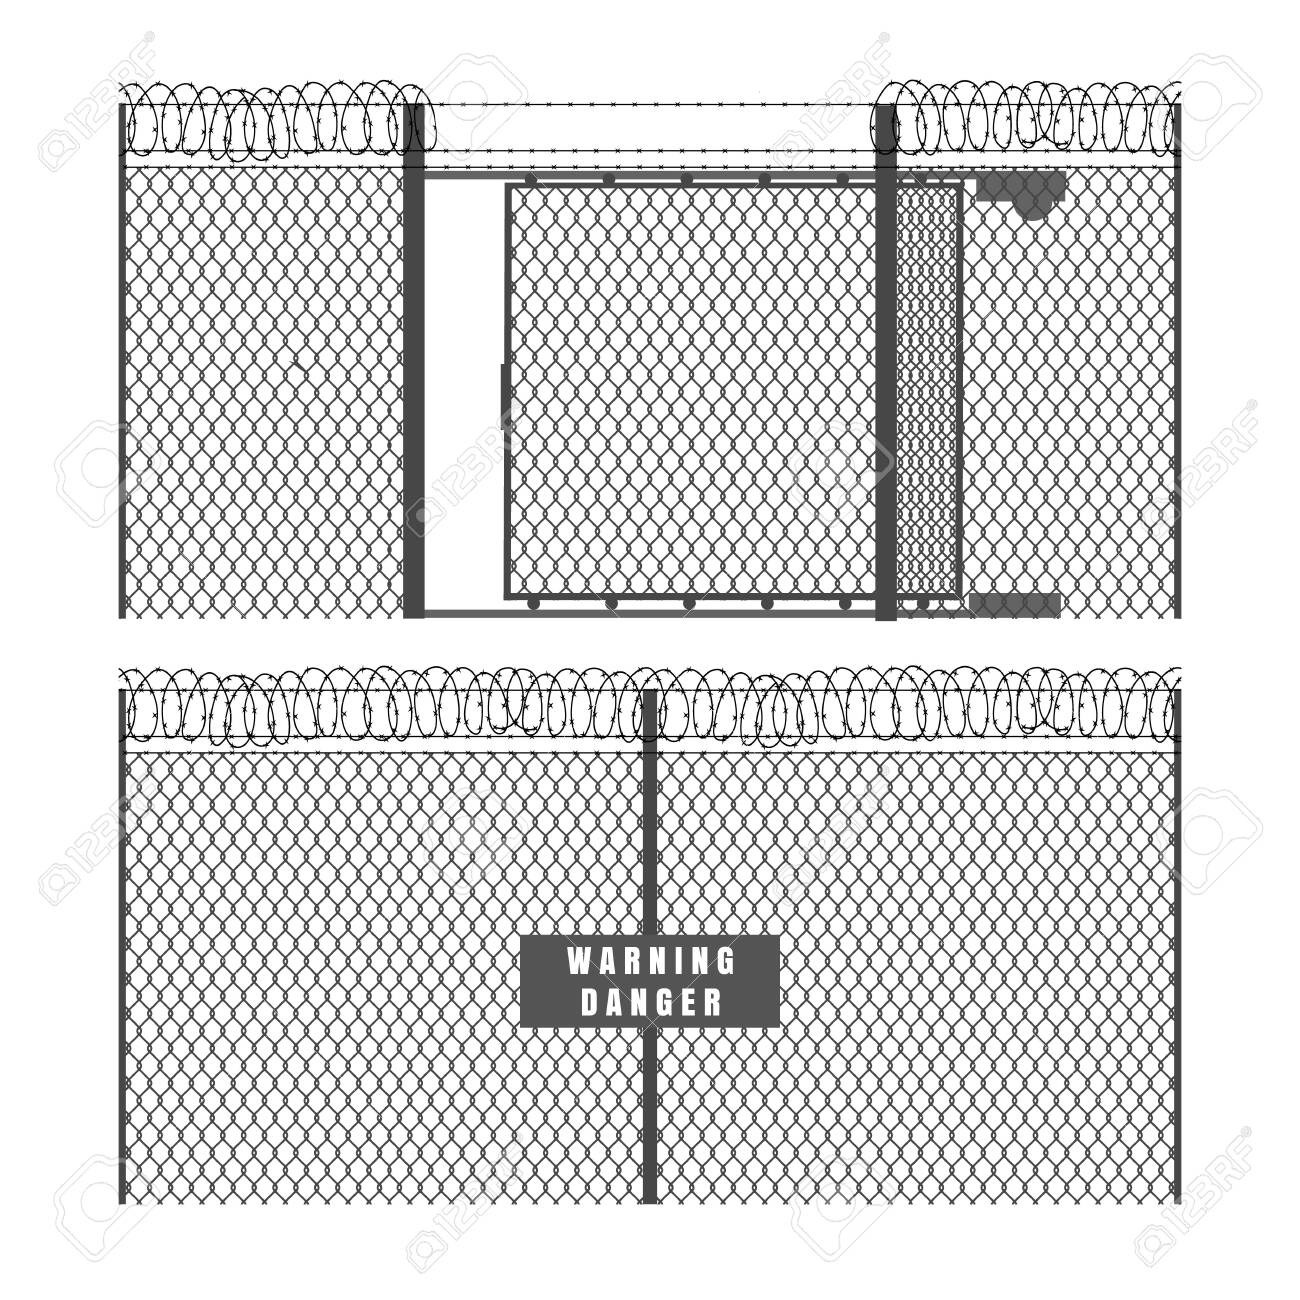 Security fence and gate. Metal fences with barbed wire isolated on white background, vector wires chain link mesh protection inclosure - 124330635